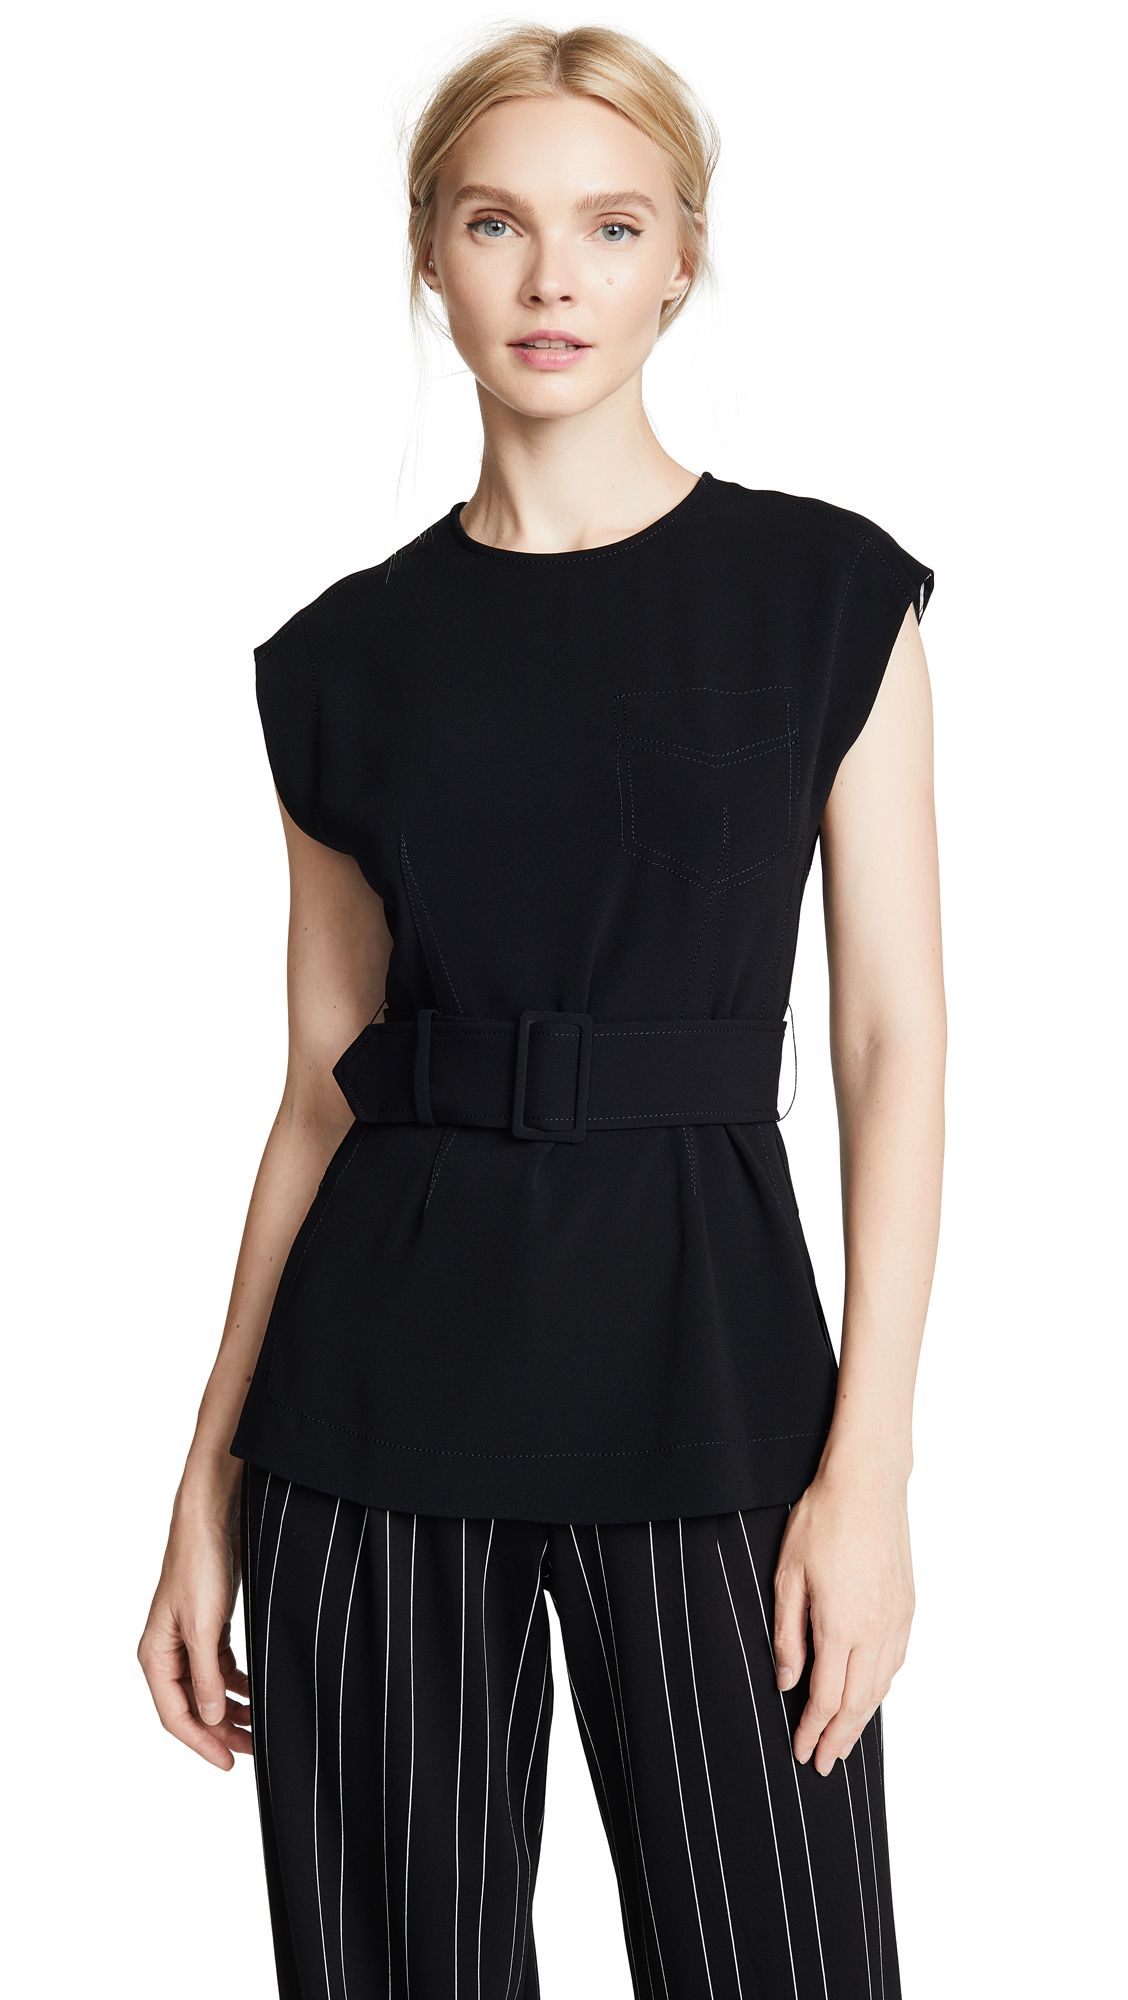 Derek Lam 10 Crosby Belted Tunic In Black